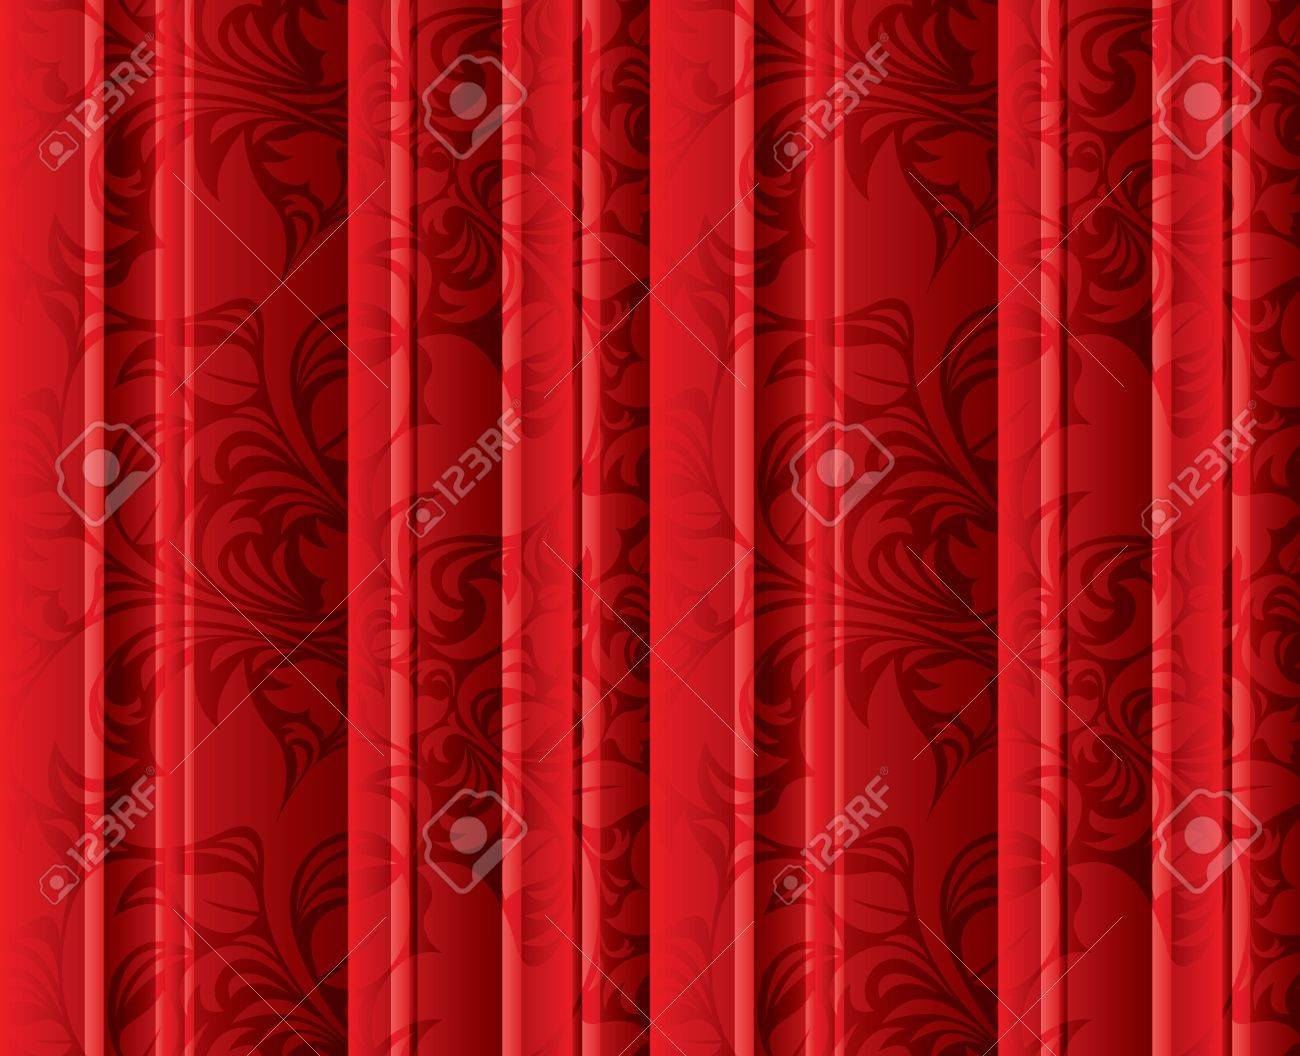 Curtains texture - Seamless Floral Texture On The Red Volumetric Curtains Background Vintage Floral Texture